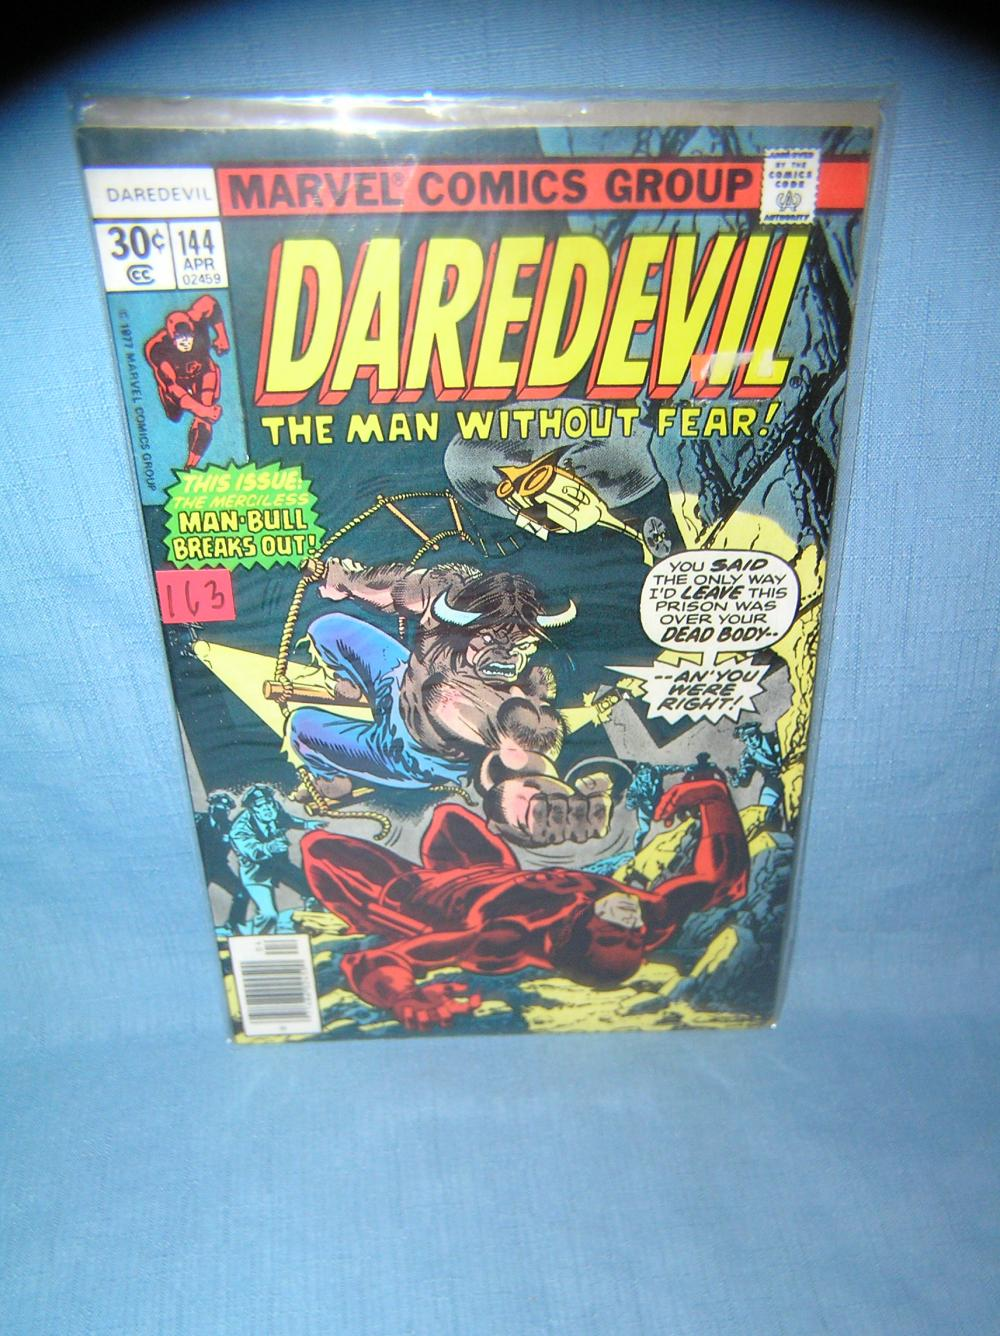 EARLY MARVEL DAREDEVIL COMIC BOOK FEATURING MAN BULL